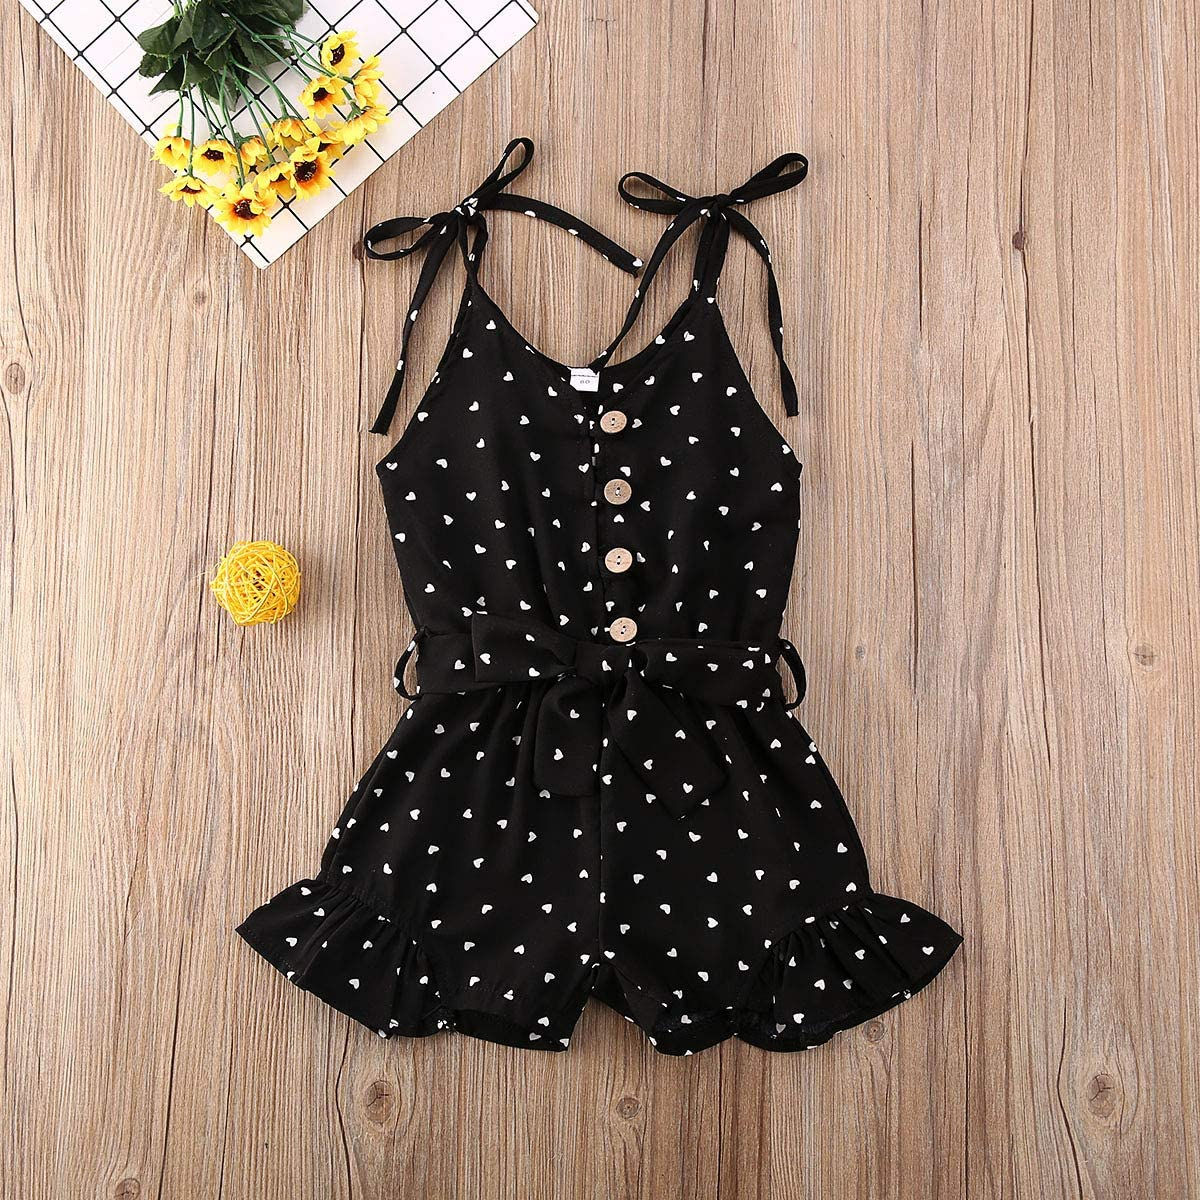 Toddler Baby Girl Clothes Self Tie Sleeveless Romper Heart Shape Print Short Jumpsuit Summer Outfit